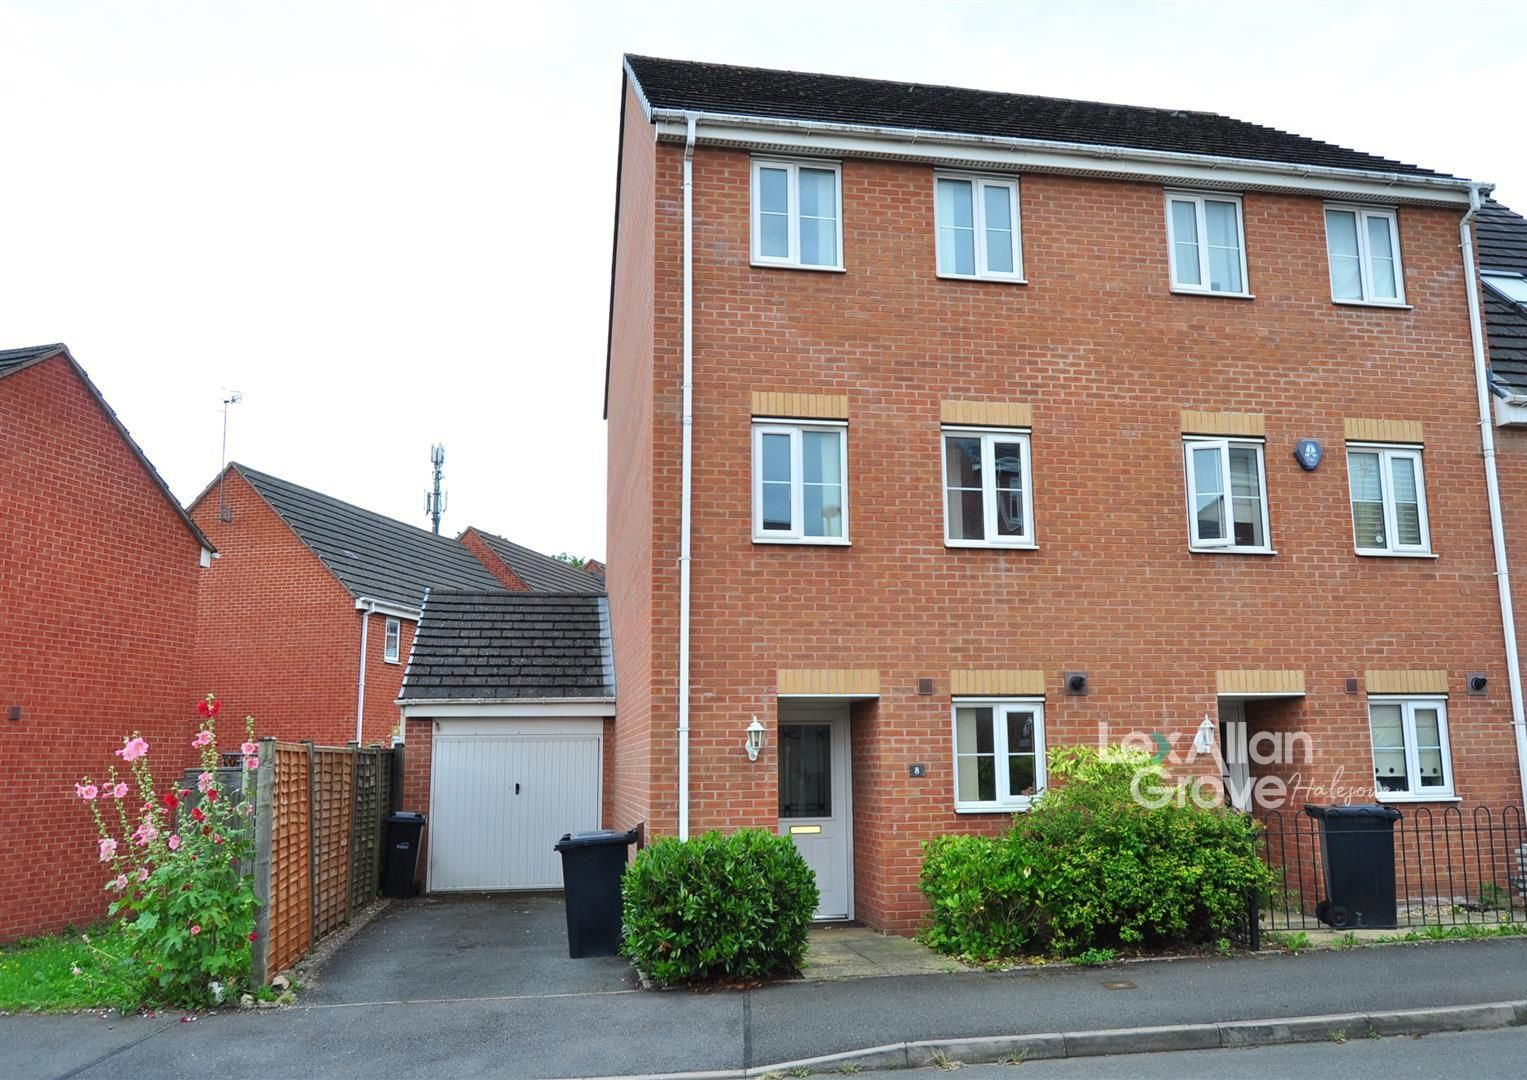 4 bed town-house for sale, B63